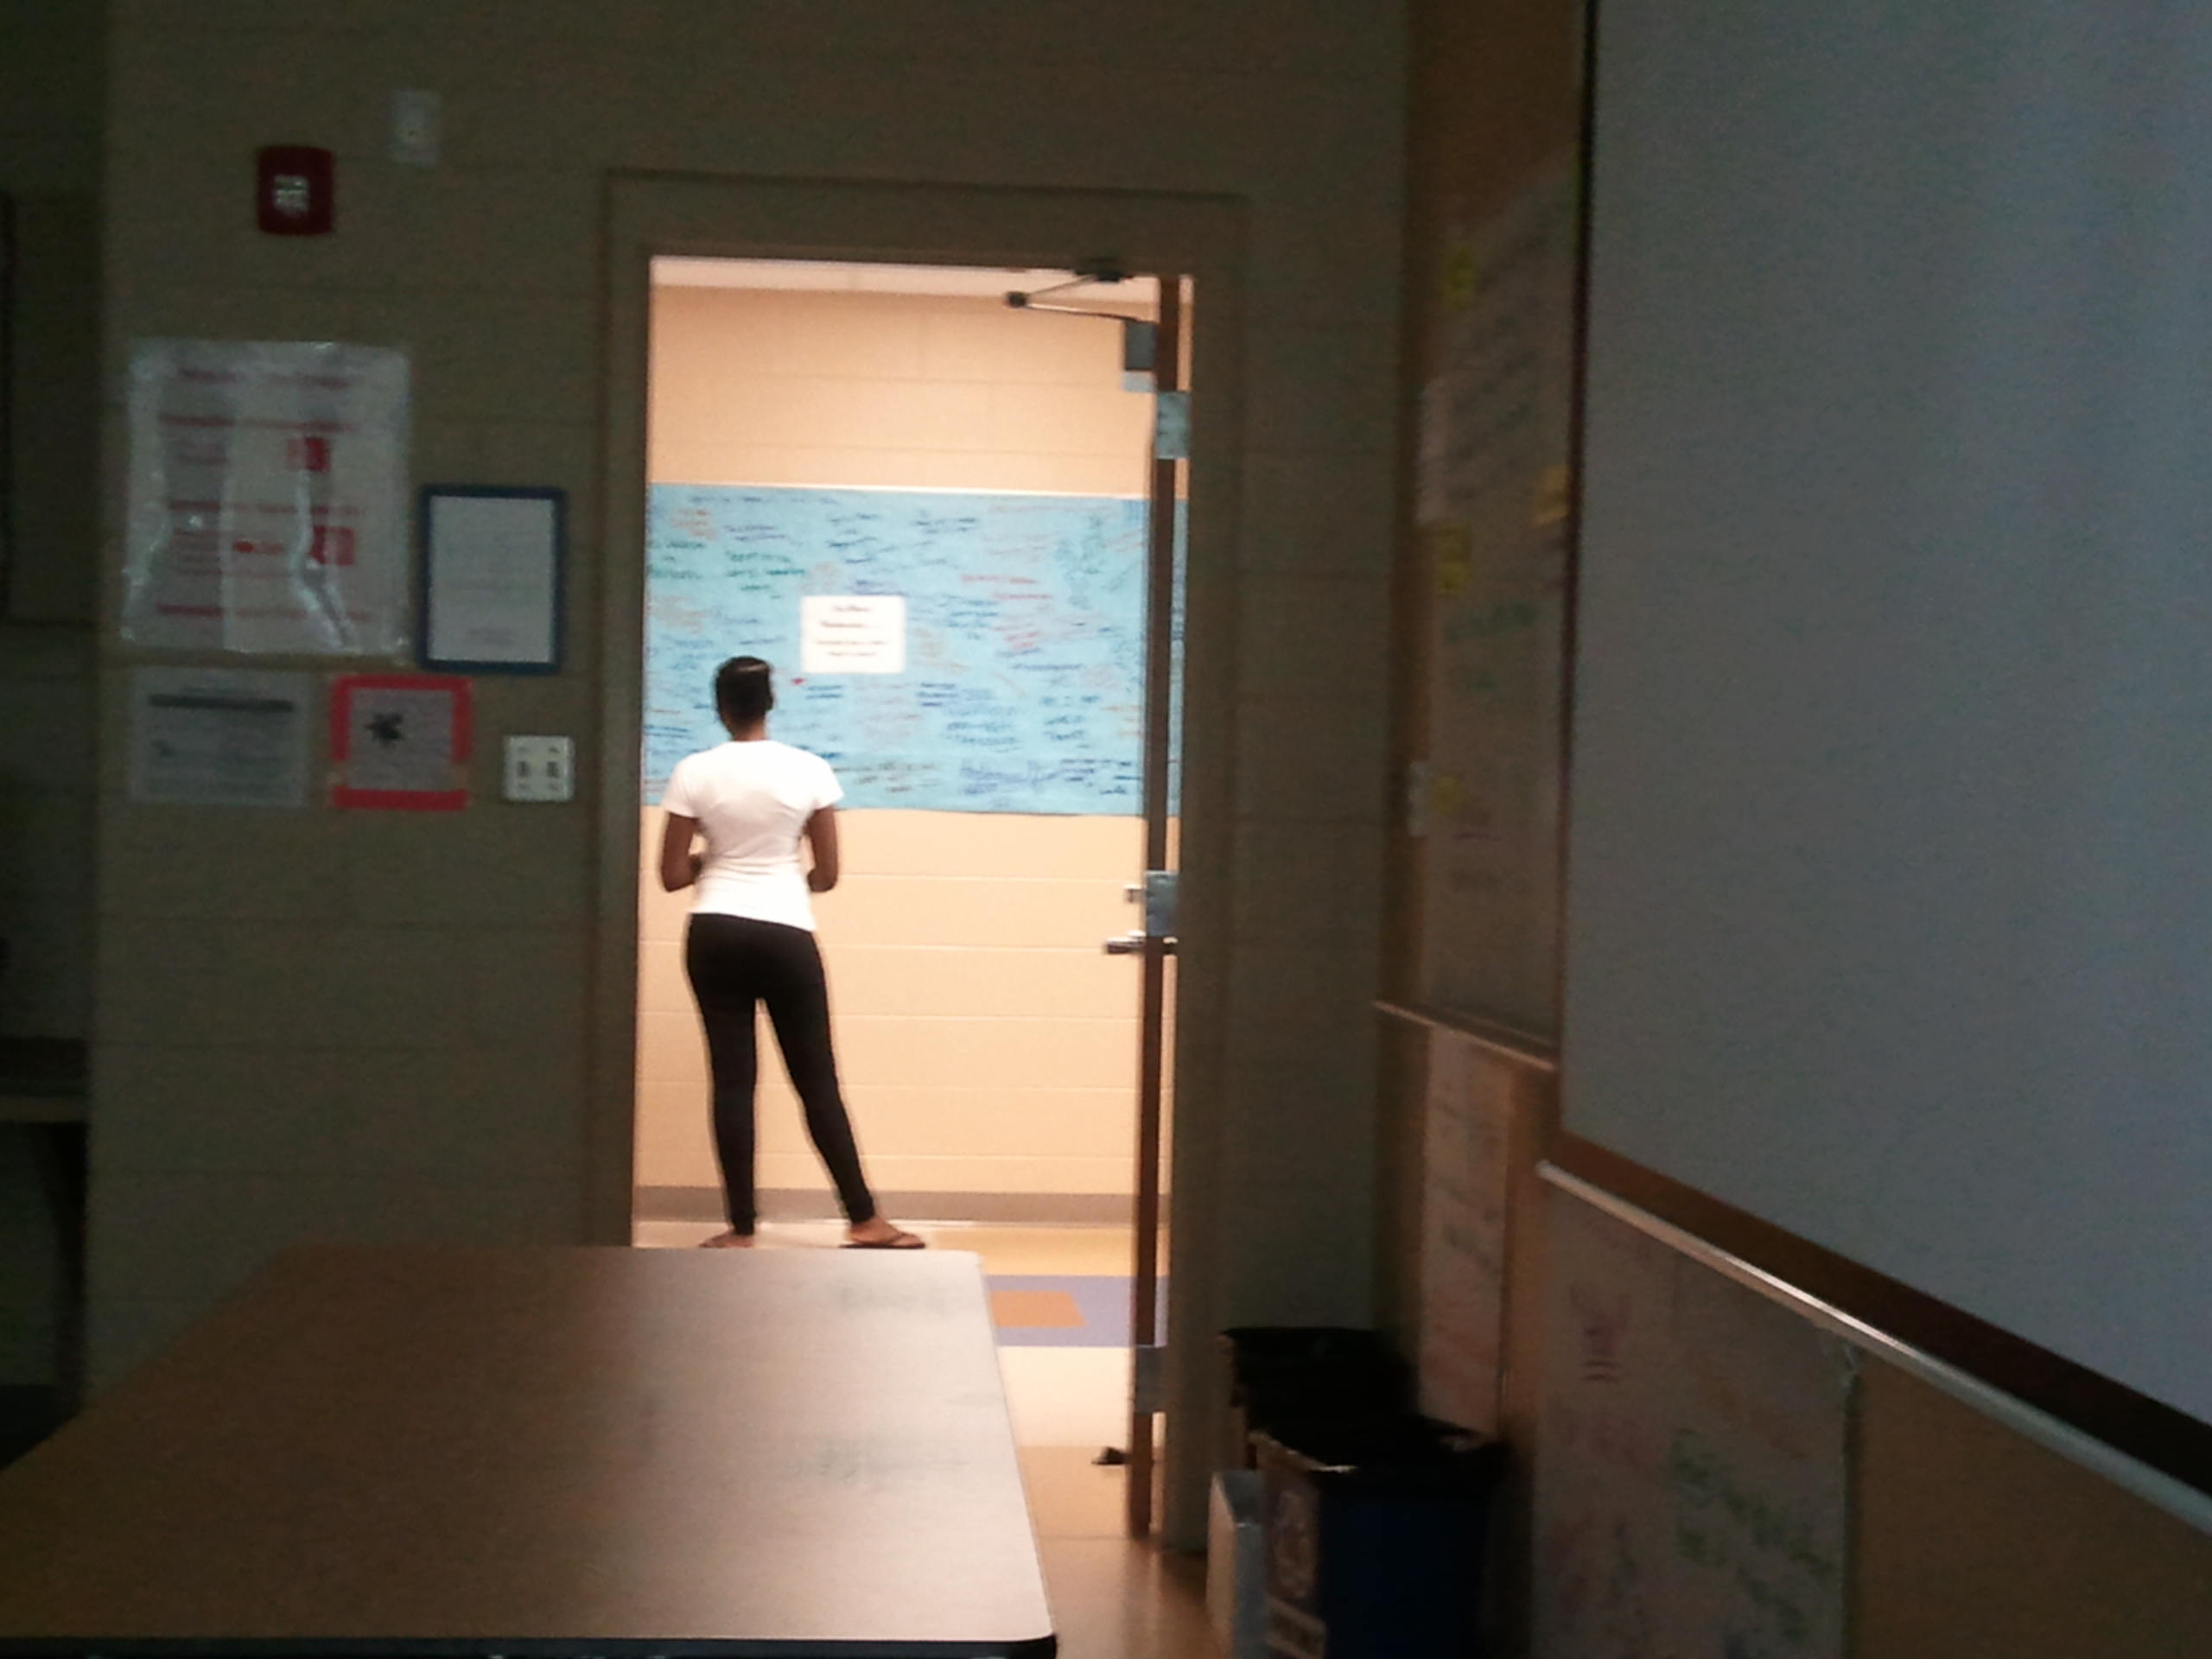 High school student standing in the hallways looks at student writing on the wall project